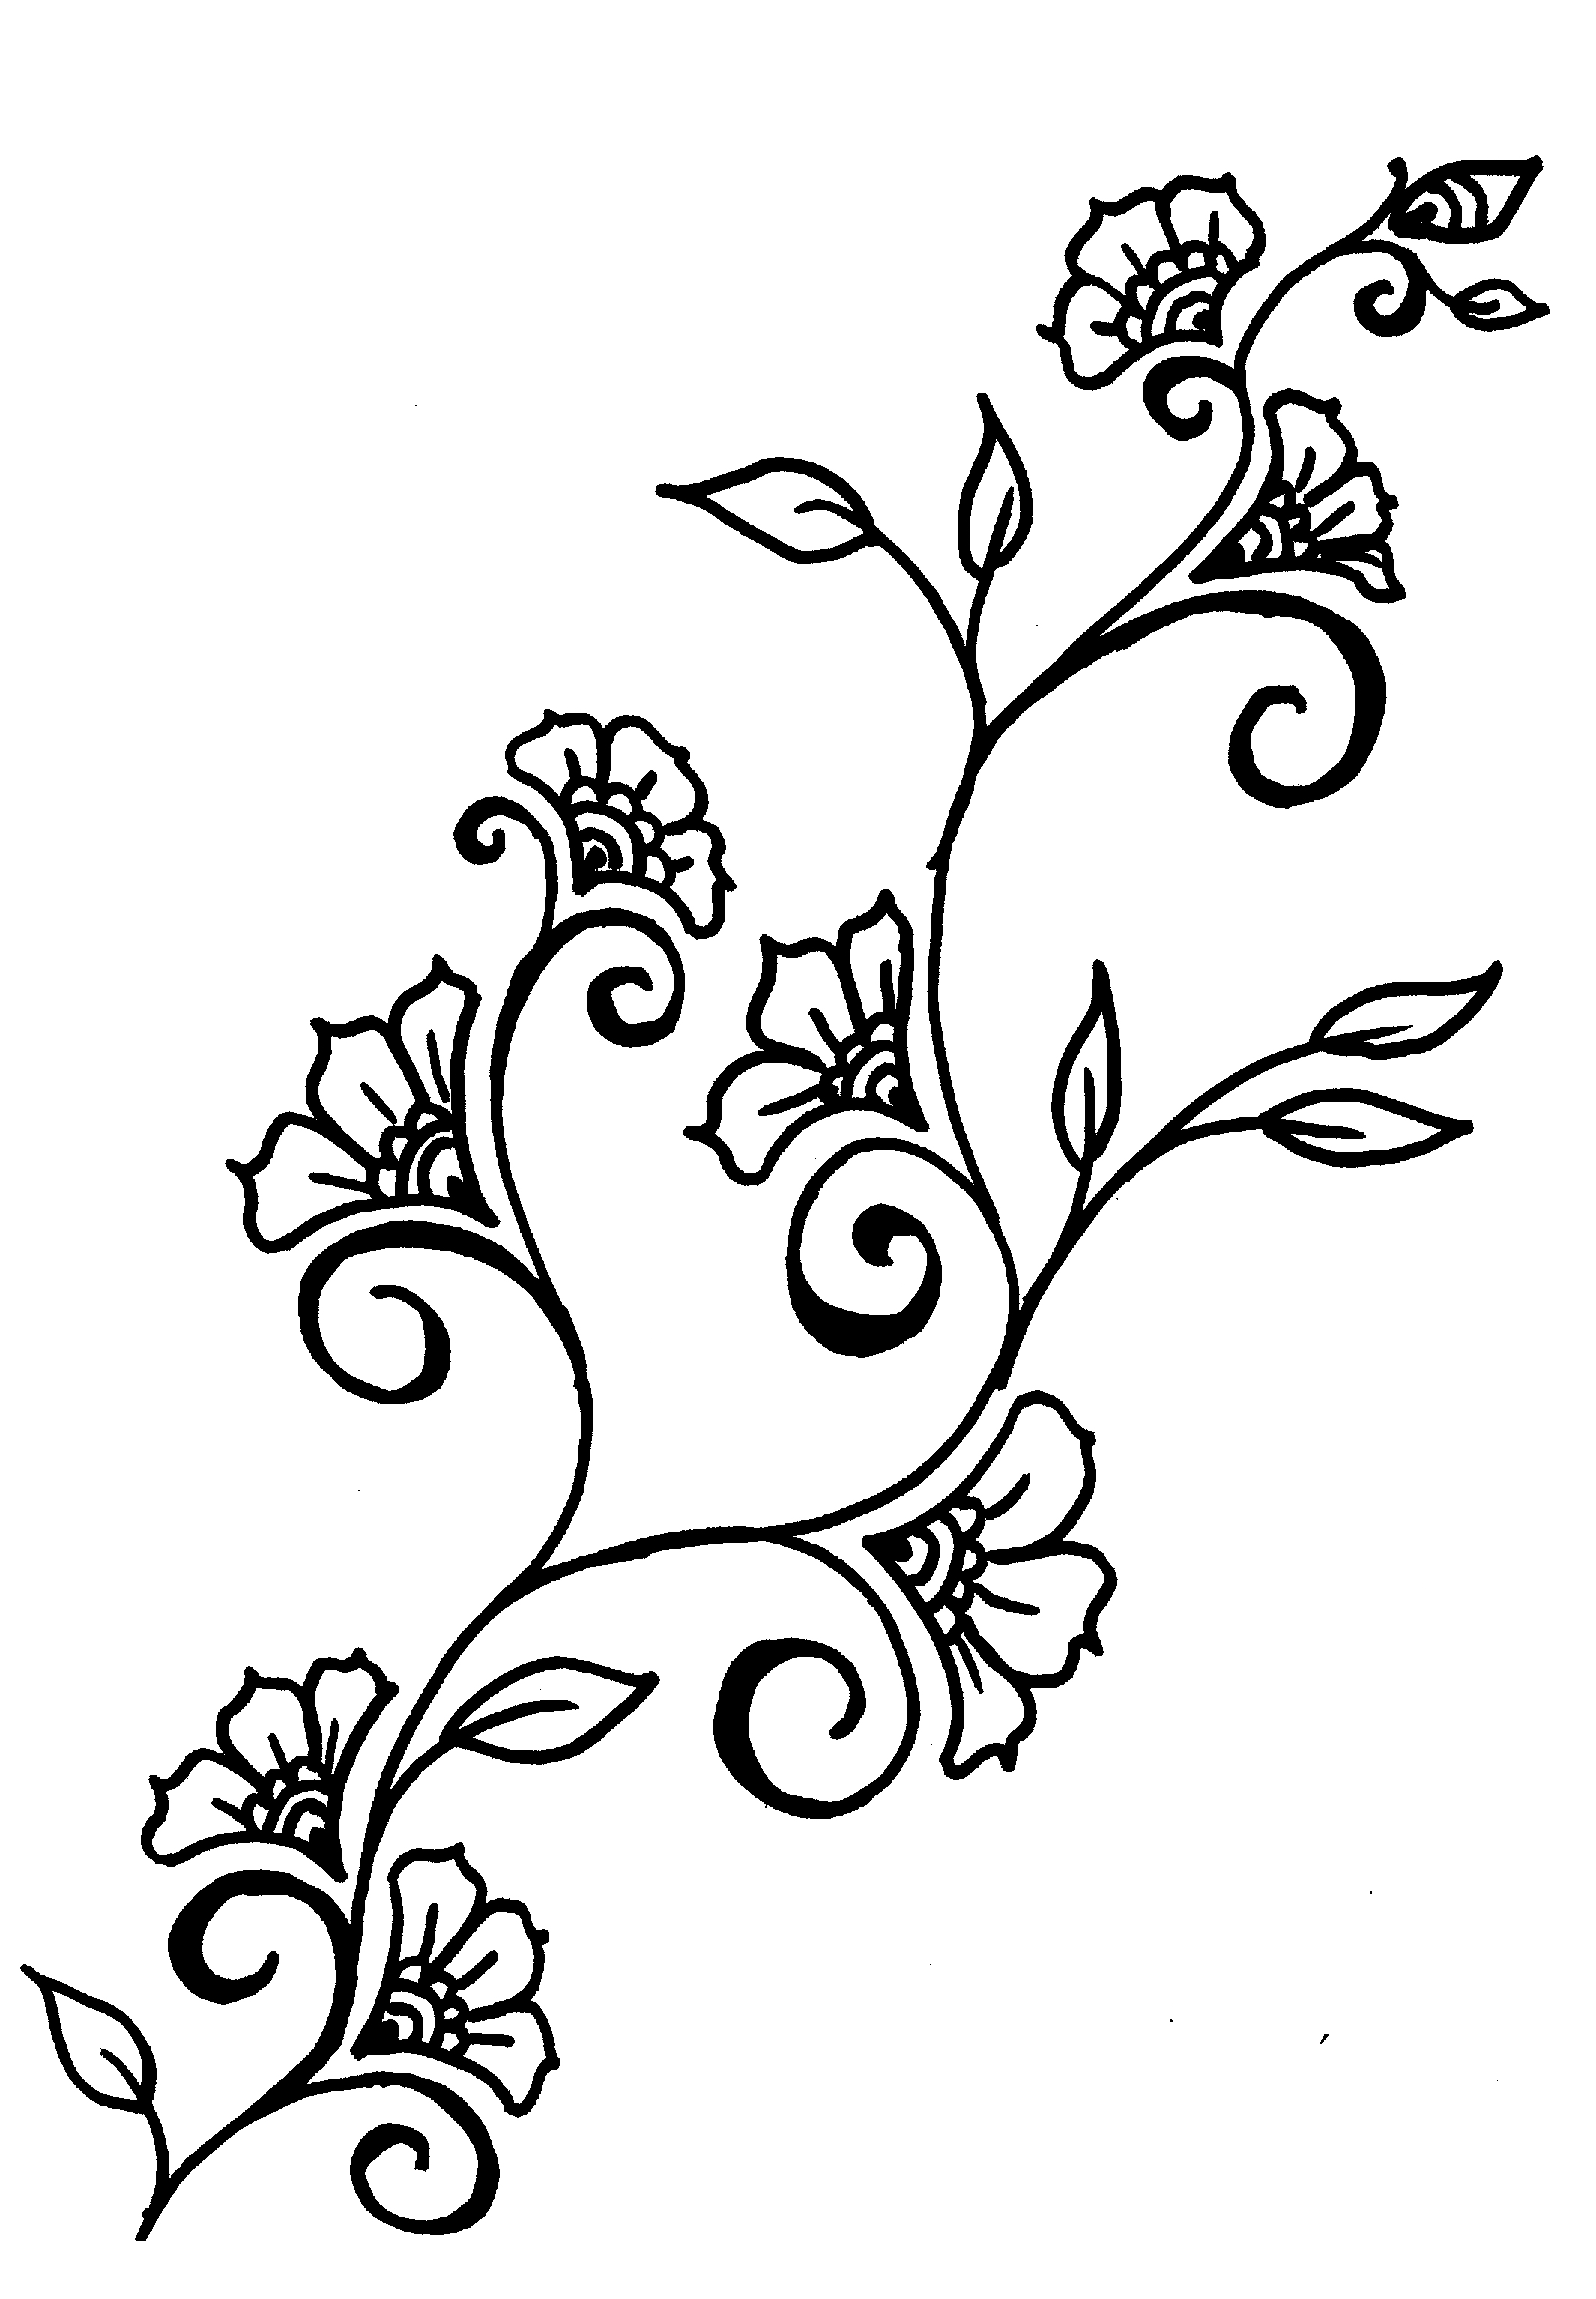 Tattoo Design Line Art : Vine tattoos designs ideas and meaning for you